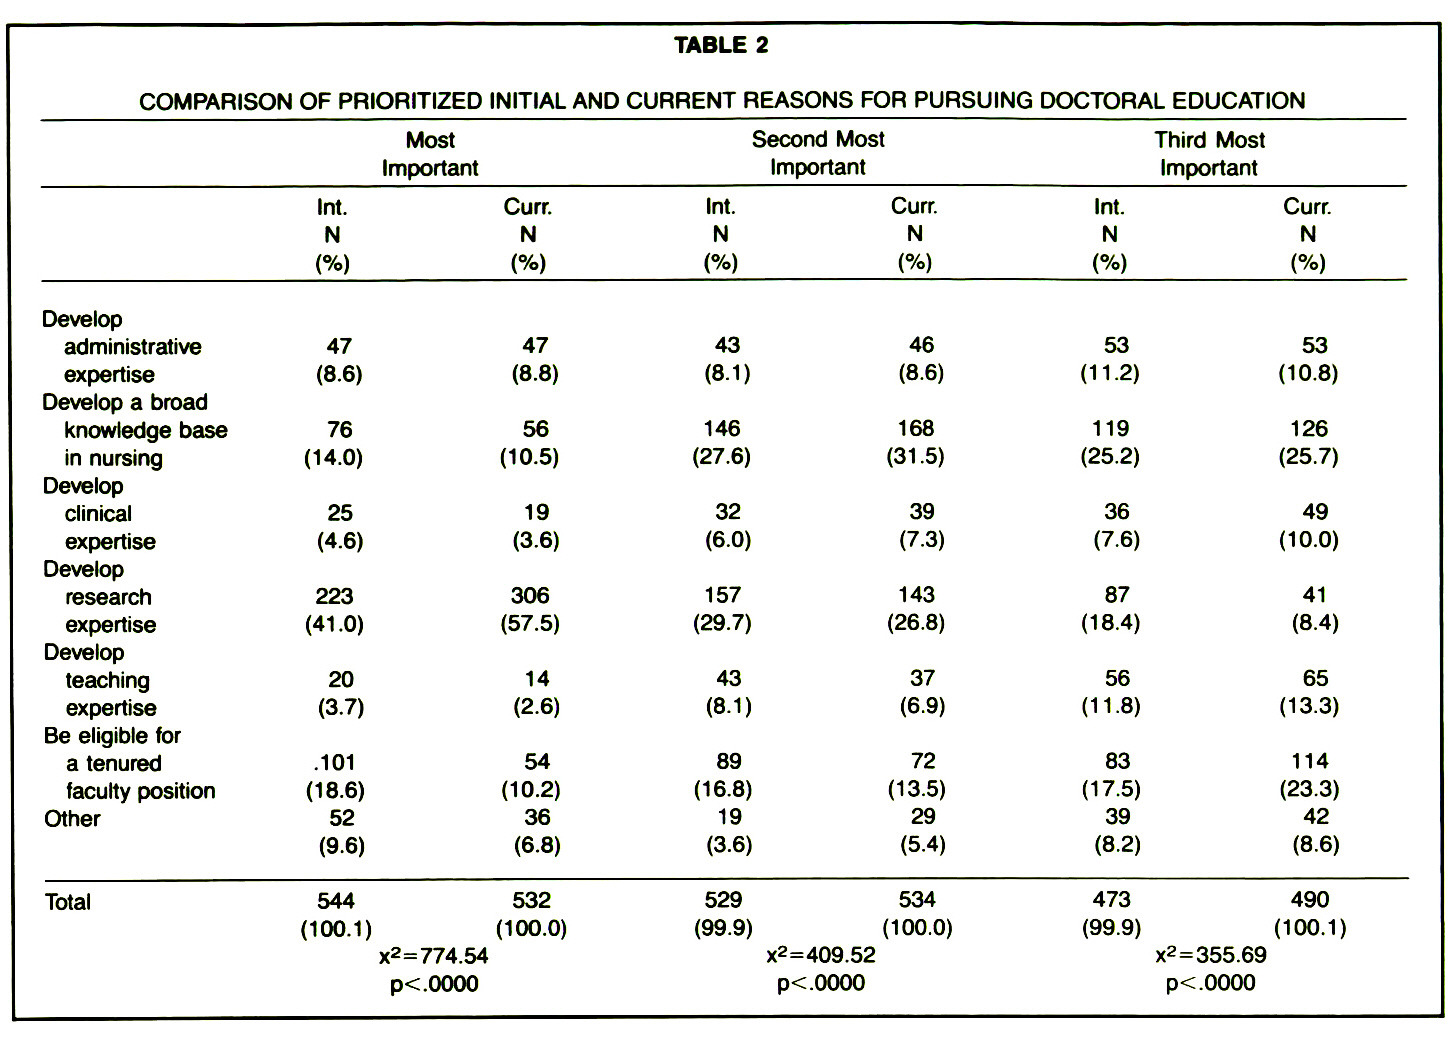 TABLE 2COMPARISON OF PRIORITIZED INITIAL AND CURRENT REASONS FOR PURSUING DOCTORAL EDUCATION